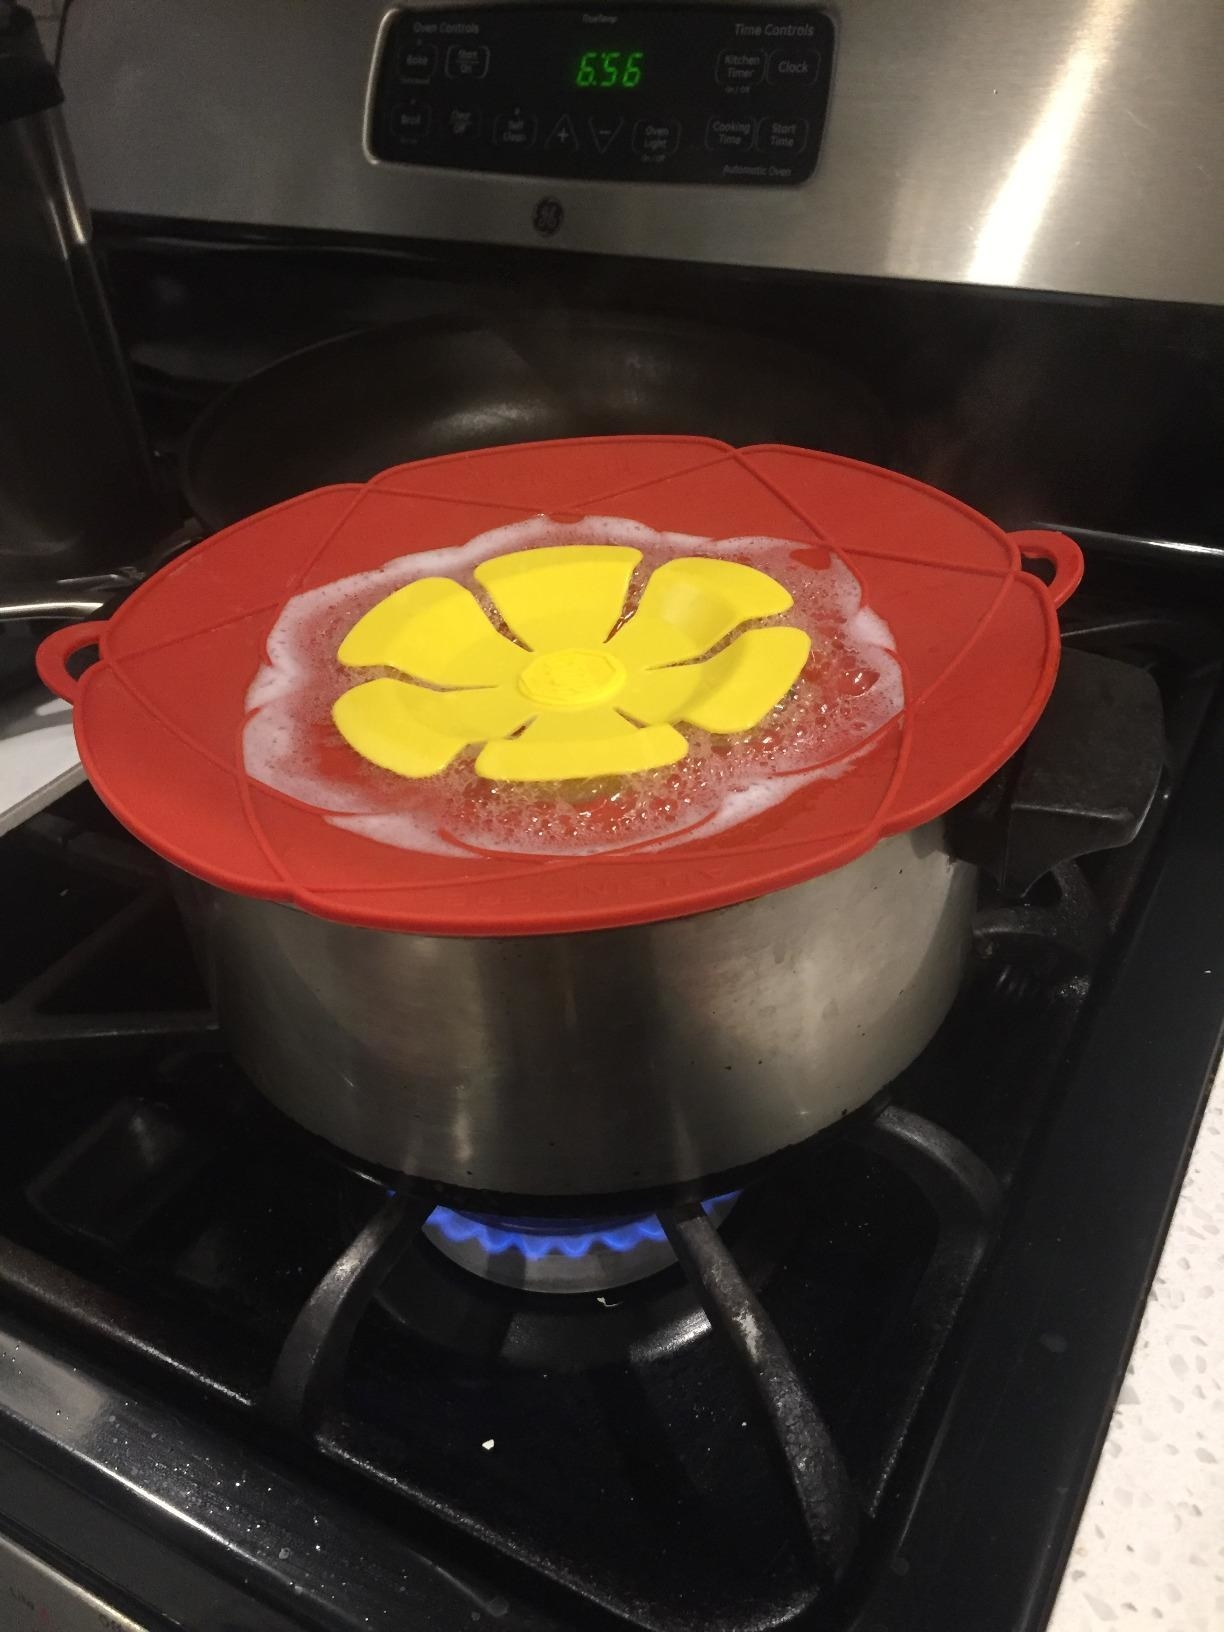 A reviewer stopping their pot boiling over using the silicone cover